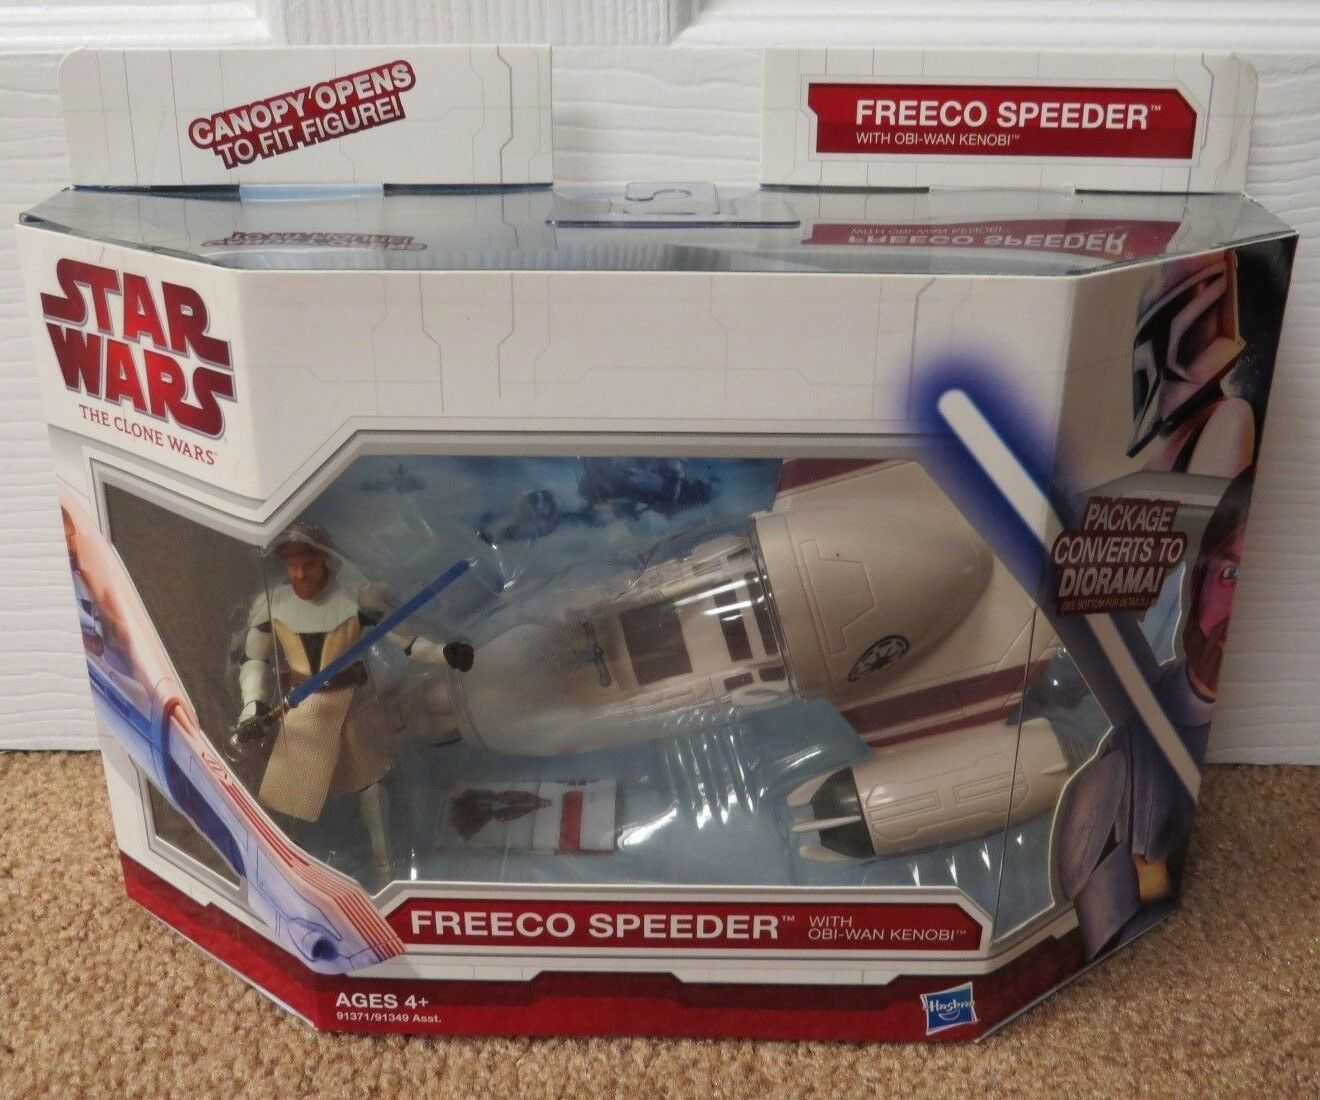 STAR WARS THE CLONE WARS - FREECO SPEEDER WITH OBI WAN KENOBI - SEALED